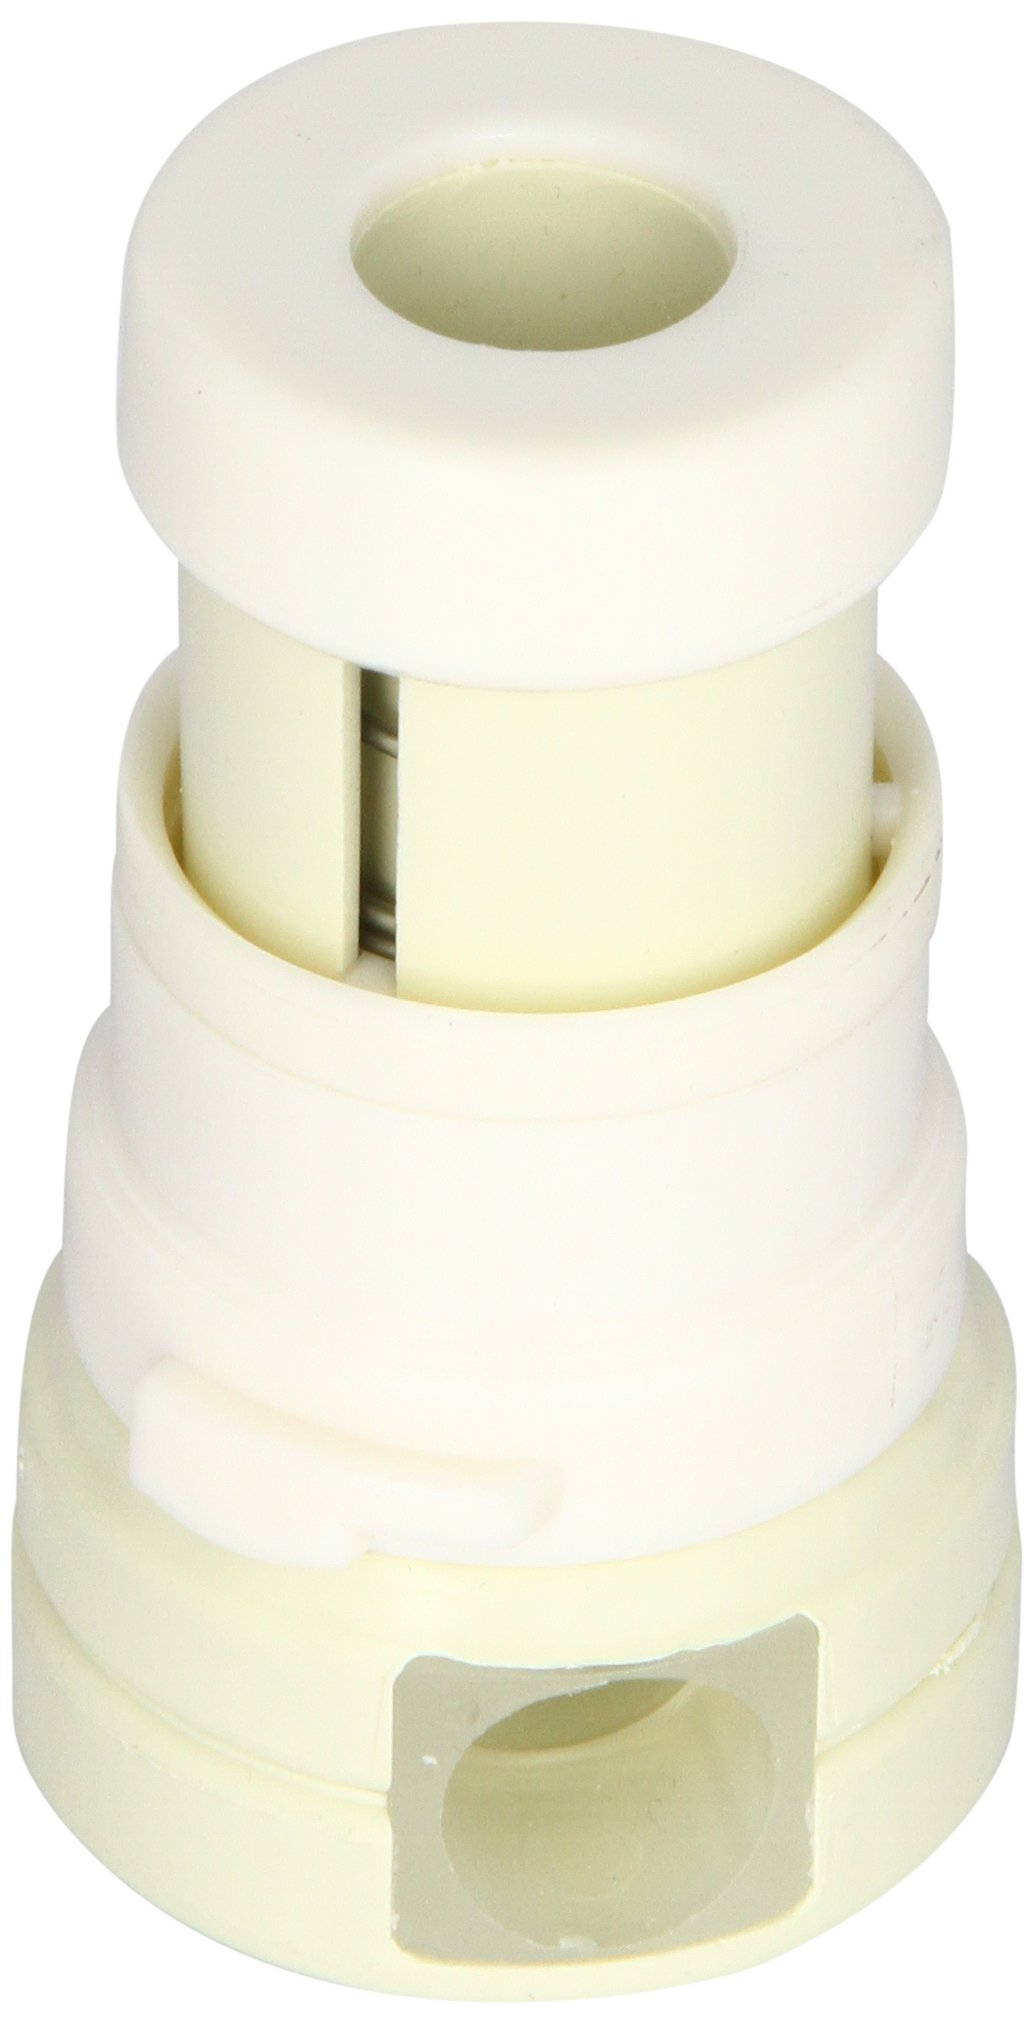 Zodiac 4-9-506 Light Cream High Flow Cleaning Head Only Replacement by Zodiac